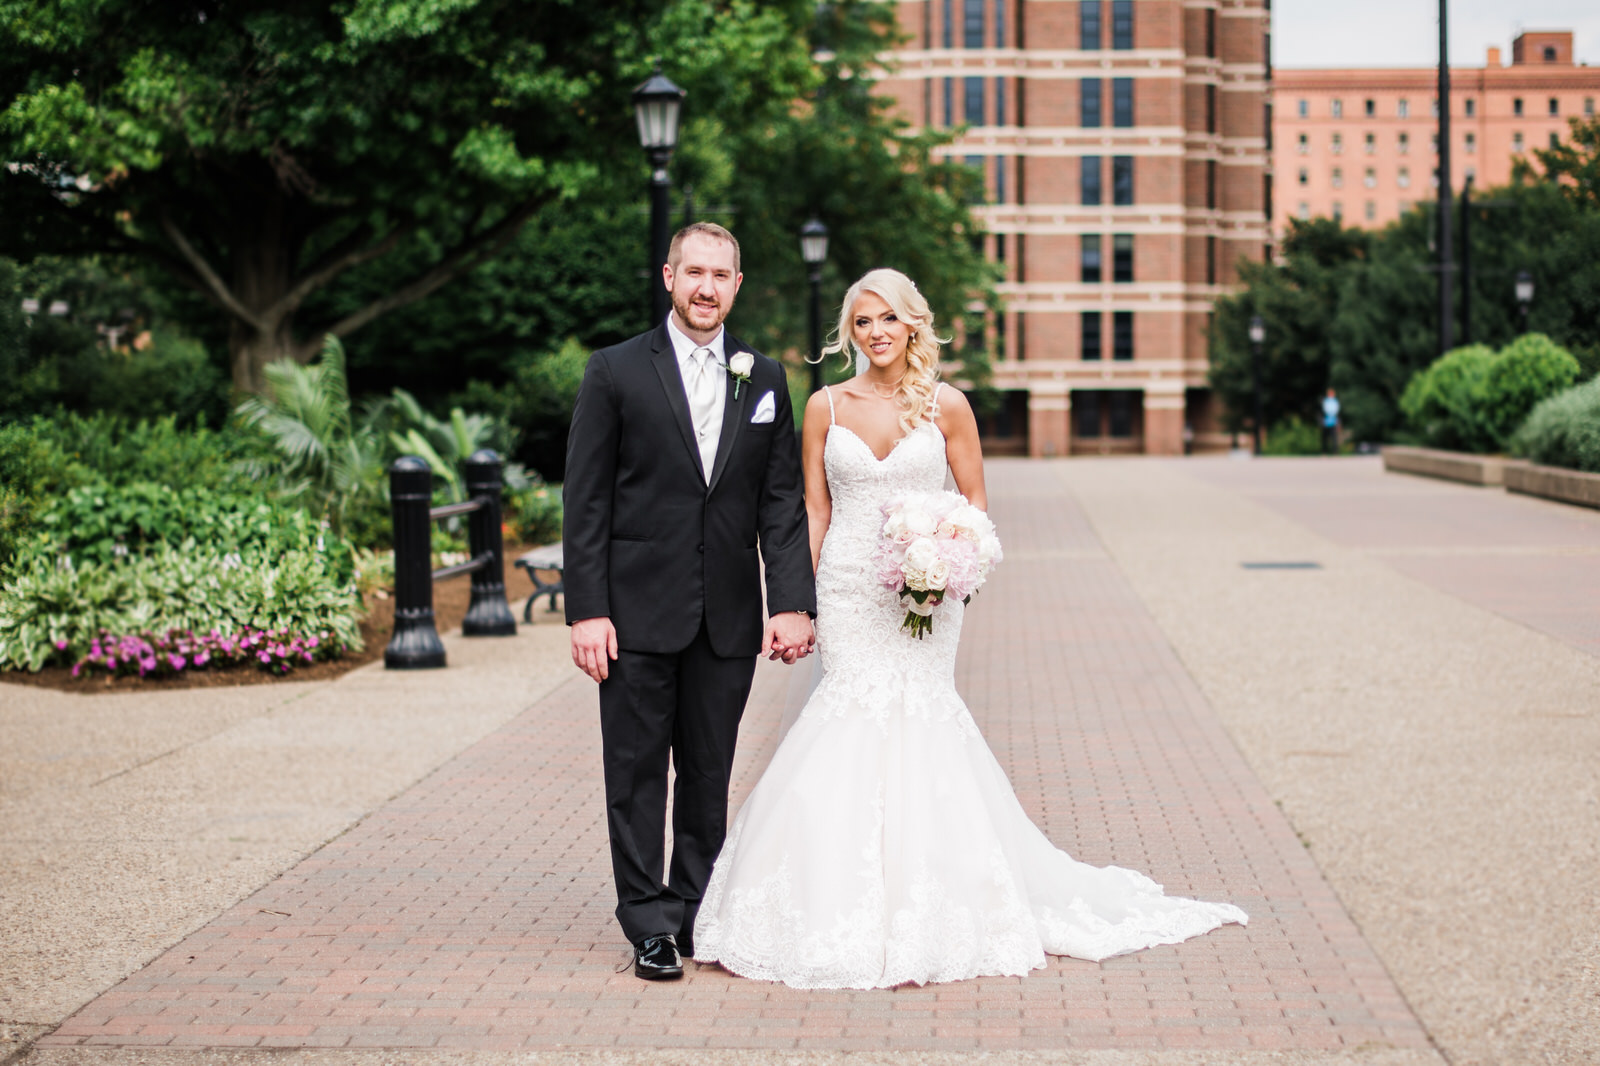 The bride and groom stopped for a posed shot at Duquesne University on the day of their wedding.